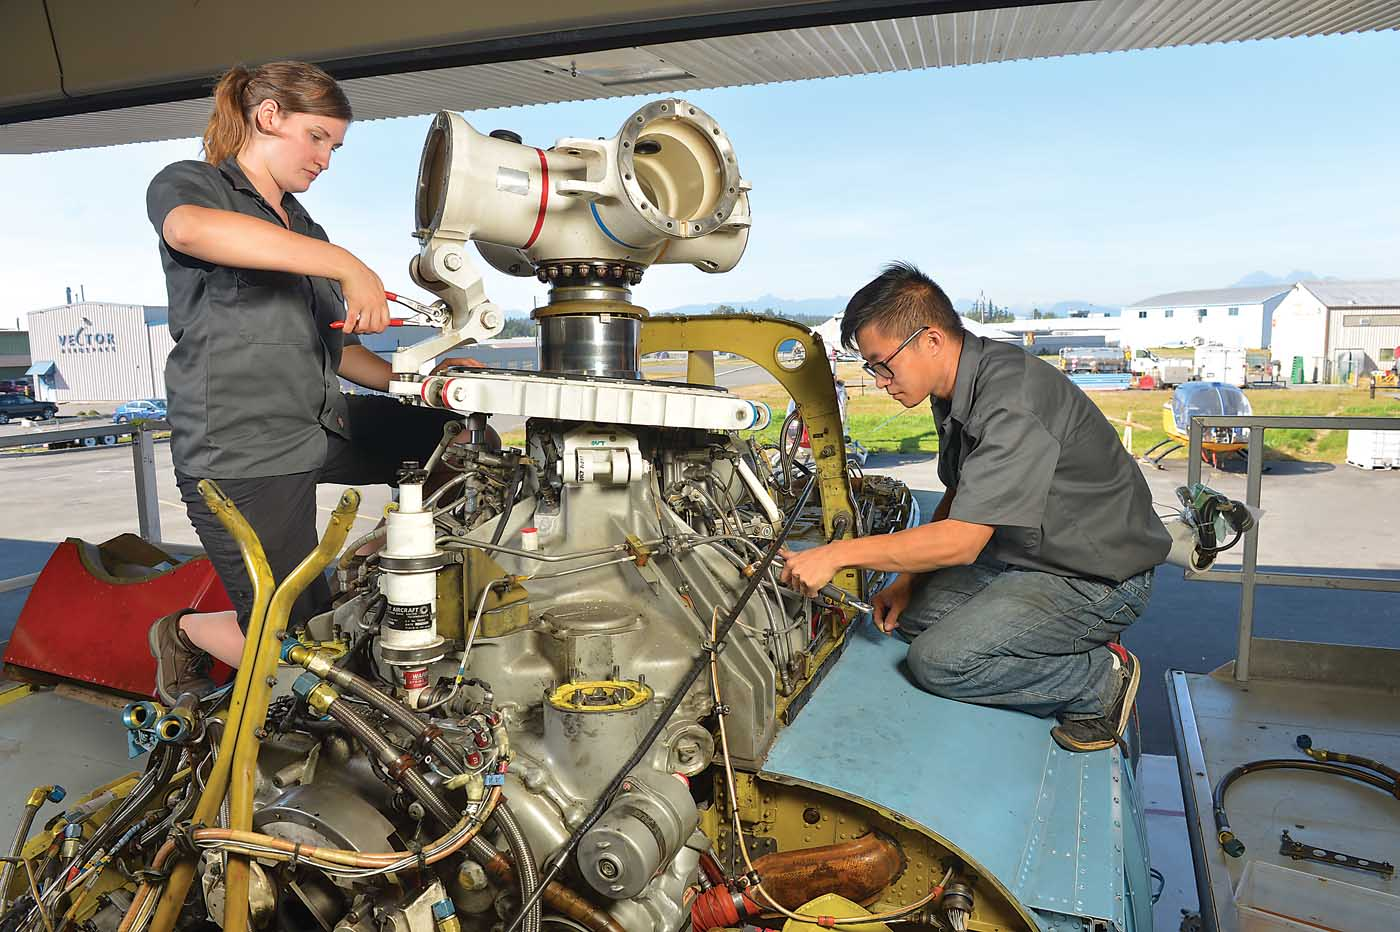 Aircraft maintenance engineer Tessa Ferneyhough, left, works on a Sikorsky S-76